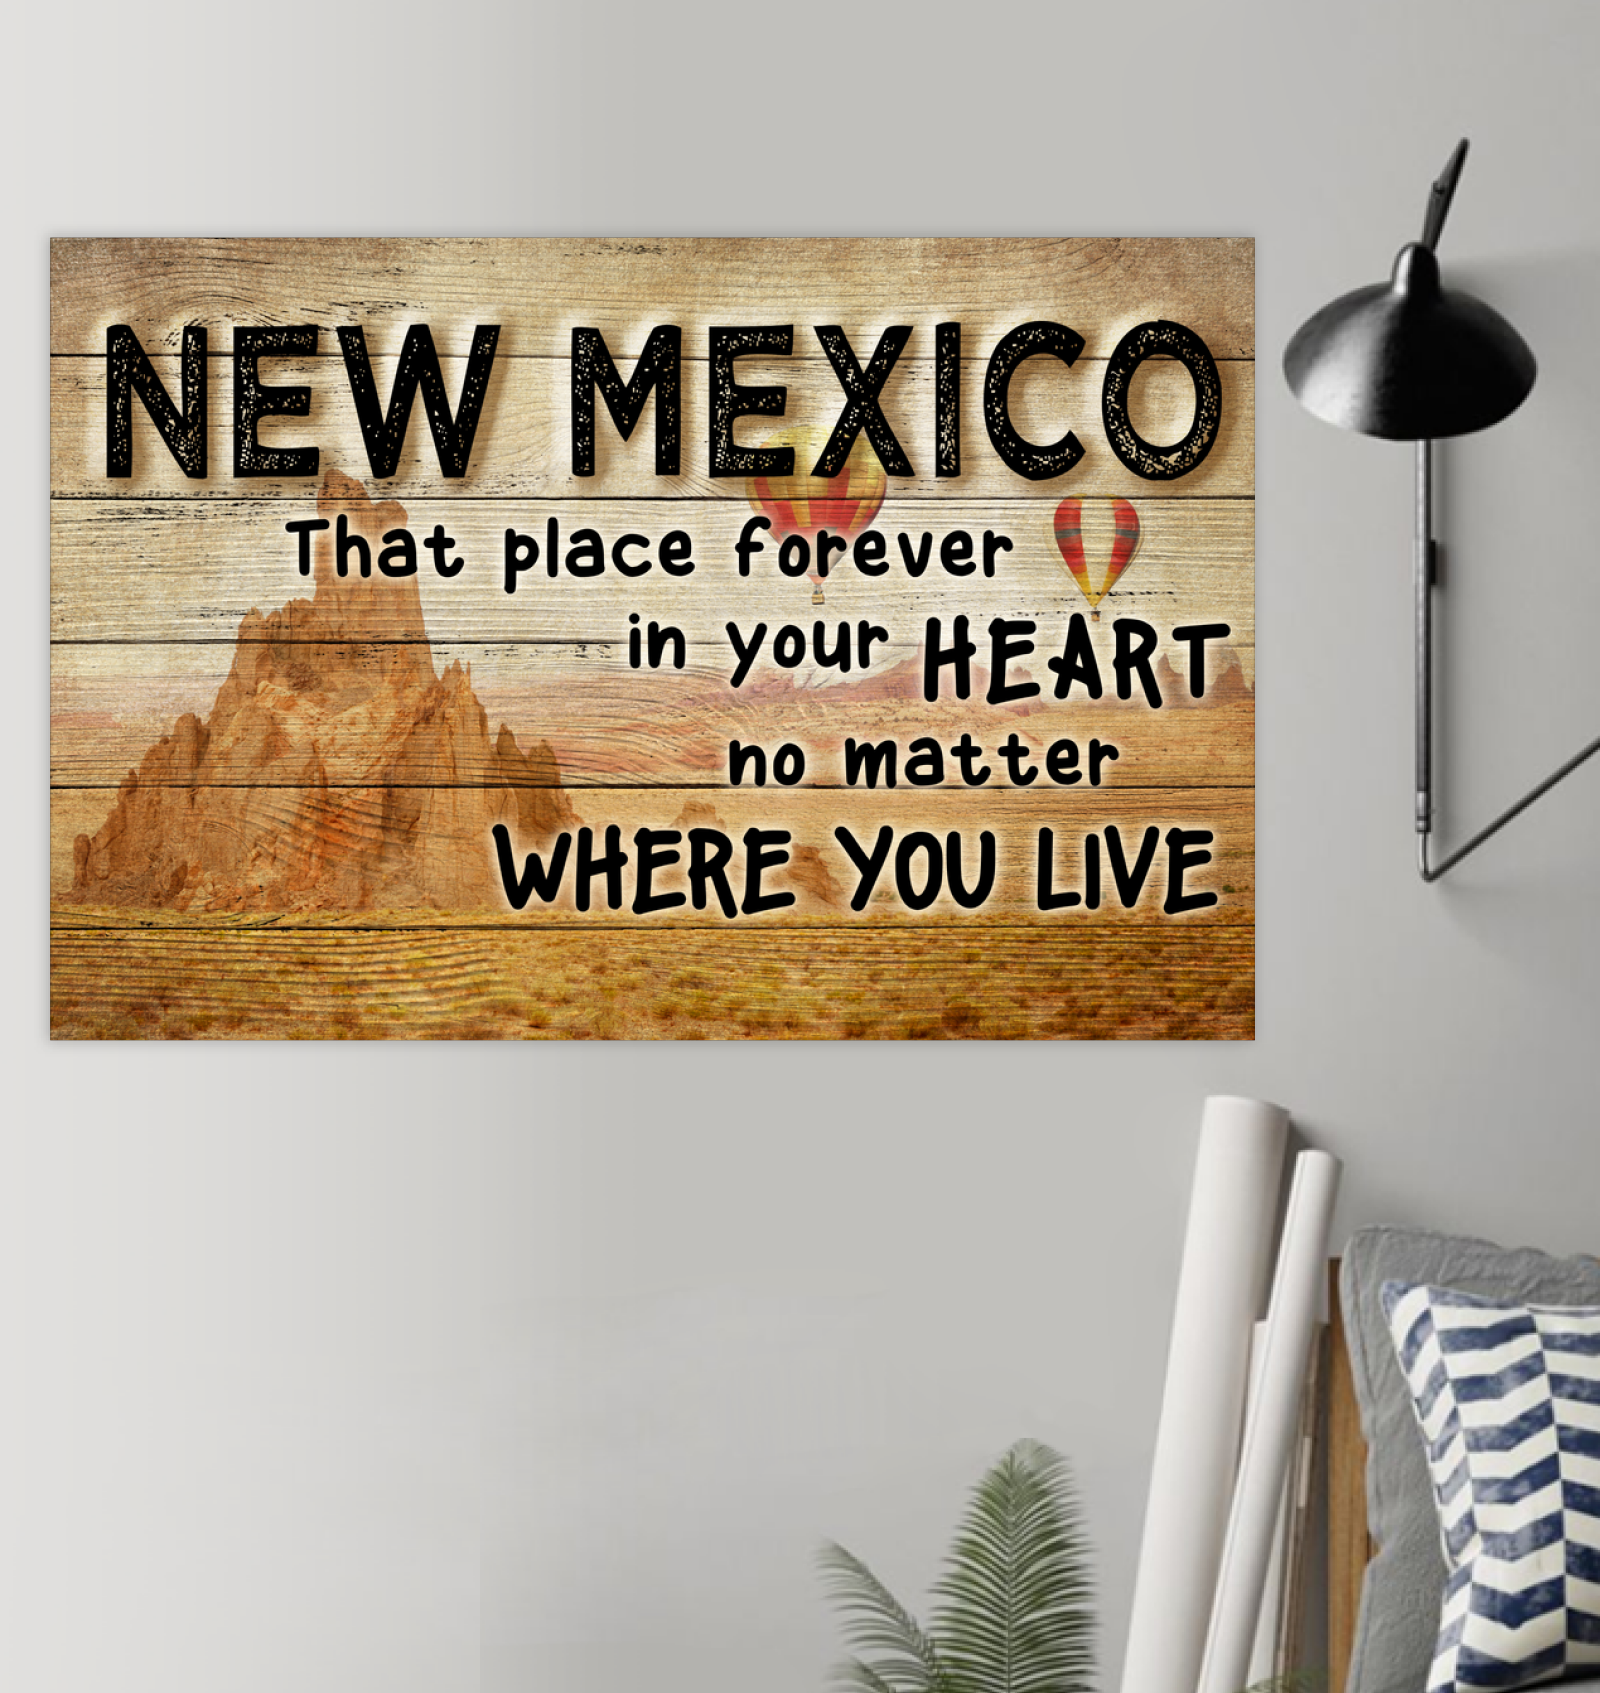 NEW MEXICO THAT PLACE FOREVER IN YOUR HEART